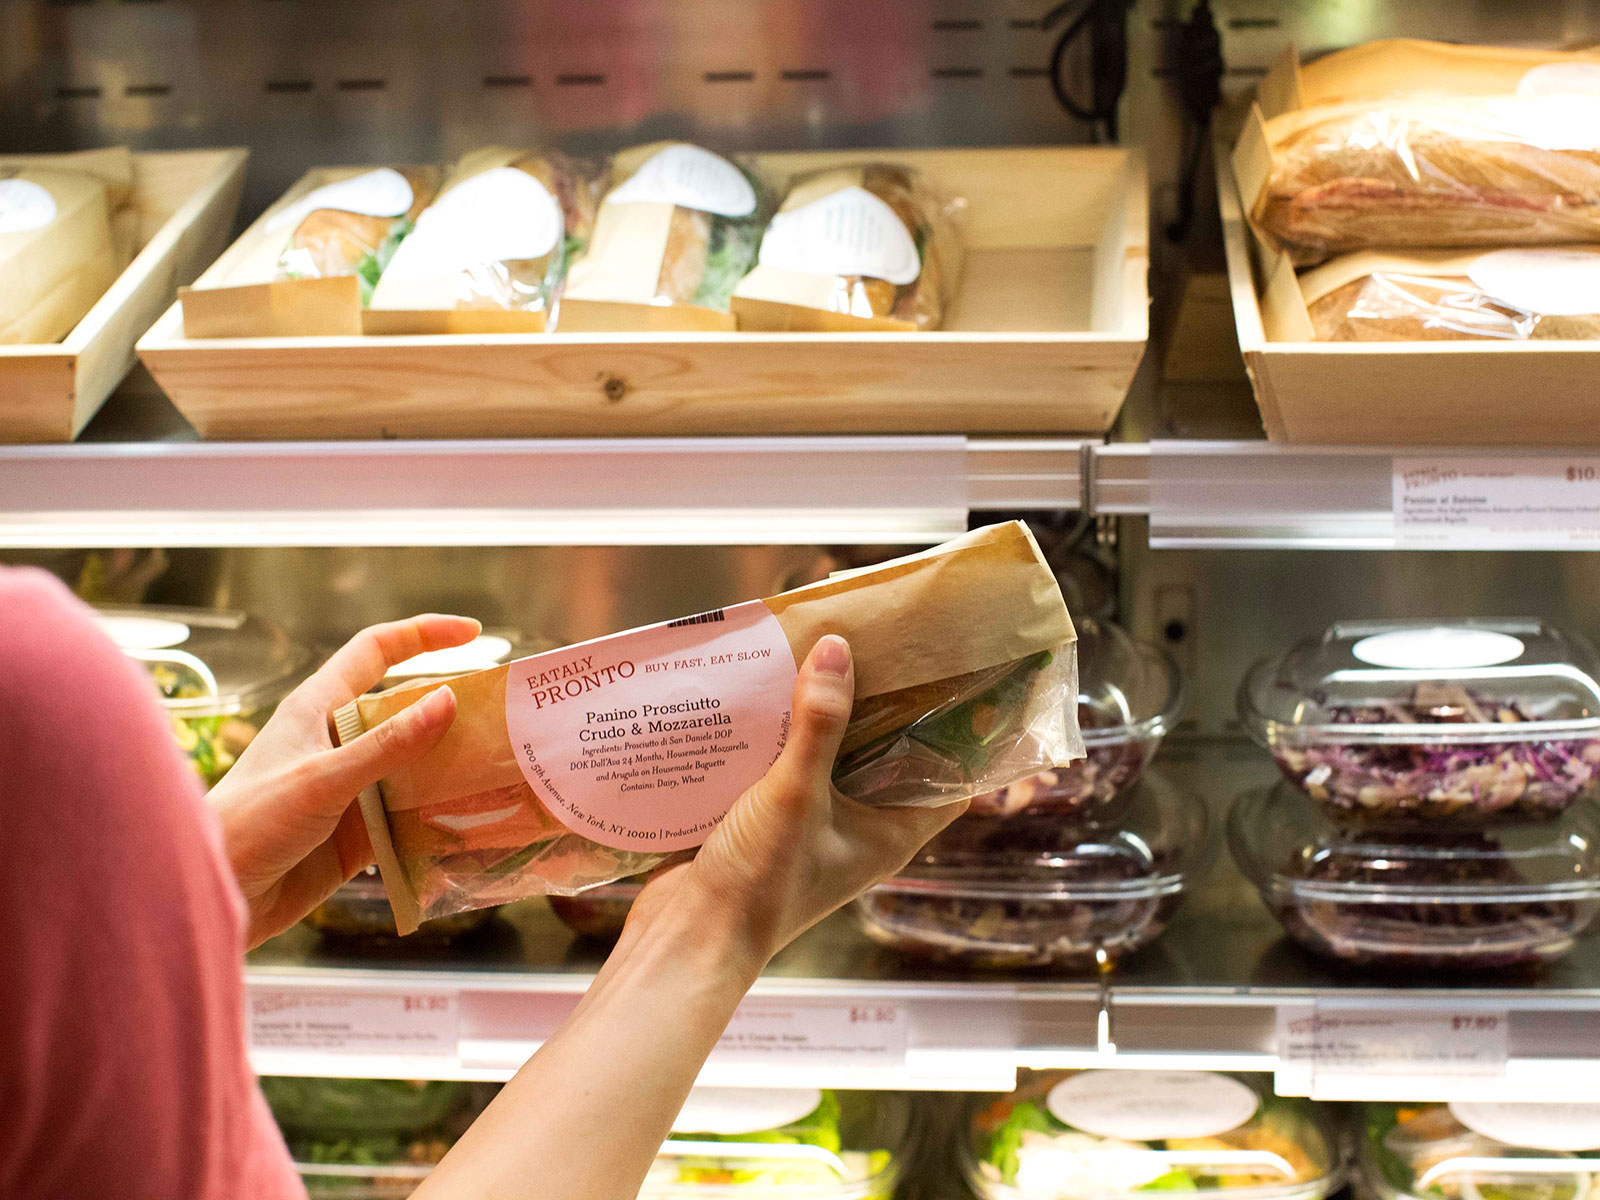 Eataly makes meals to go